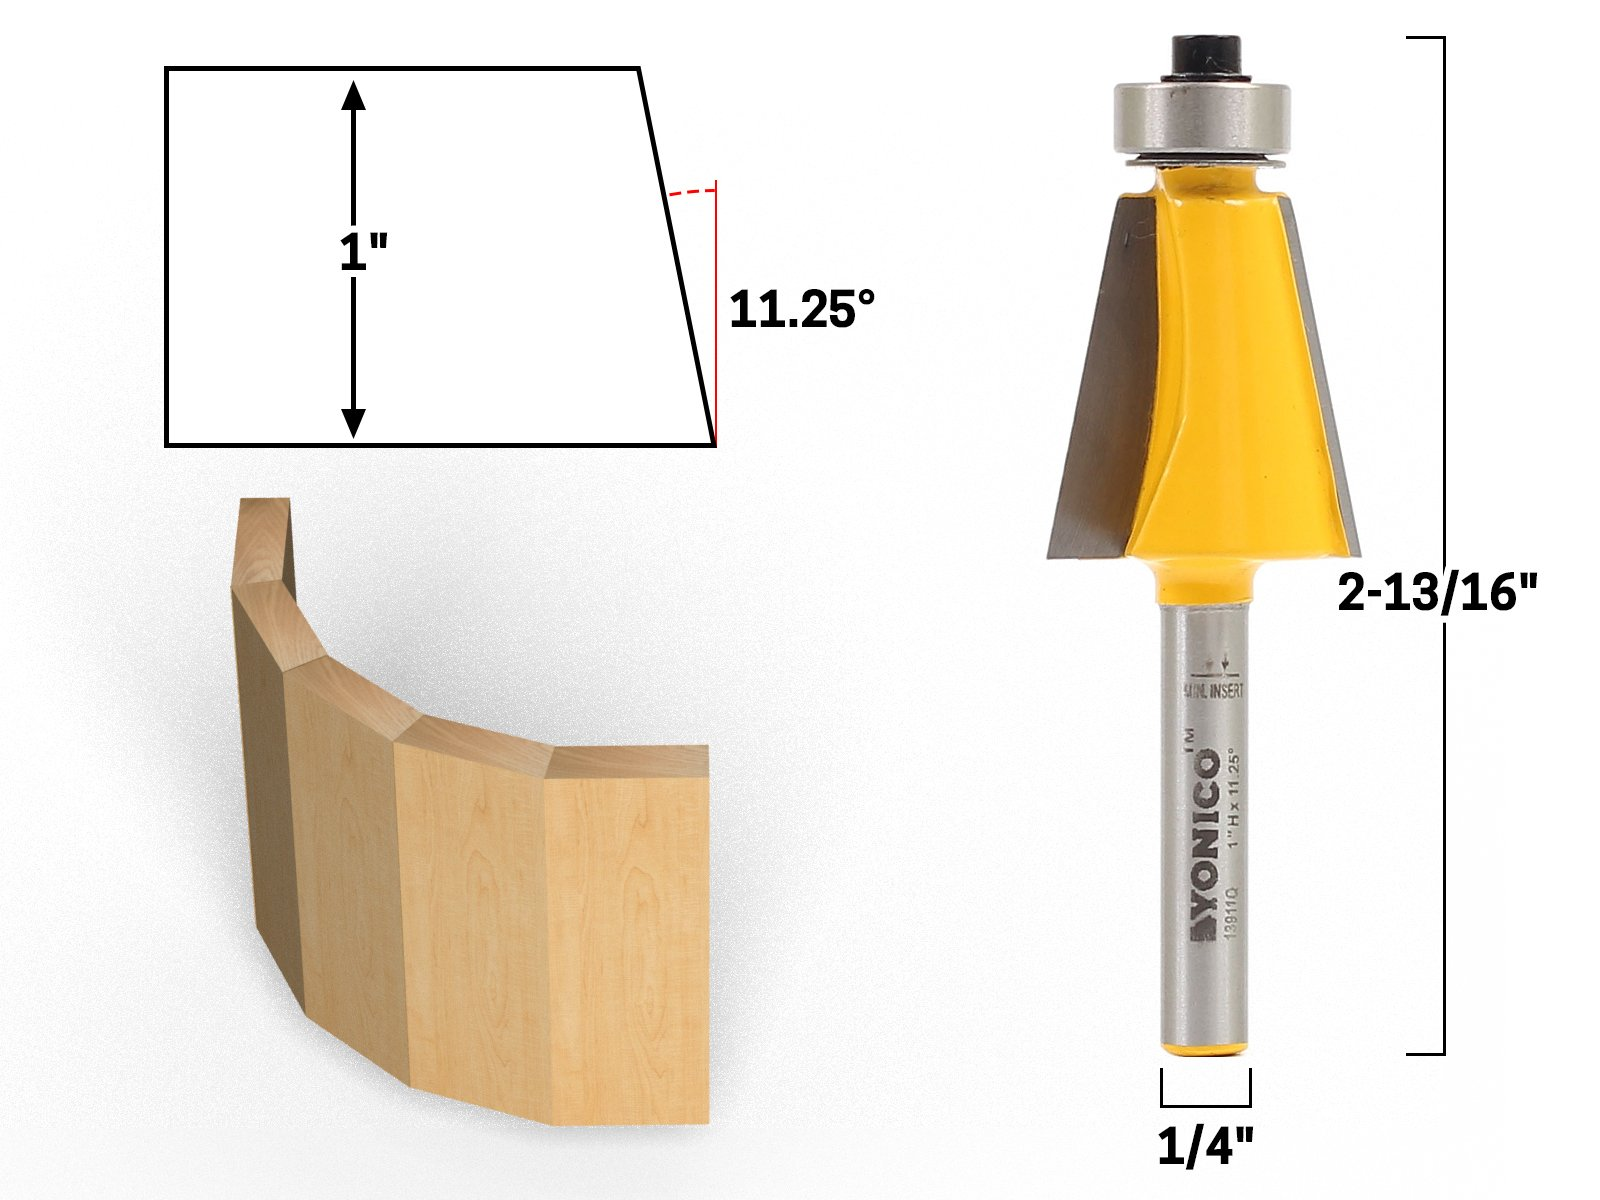 Yonico 13911q 11.25 Degree Bevel Edge Forming Router Bit 1/4-Inch Shank